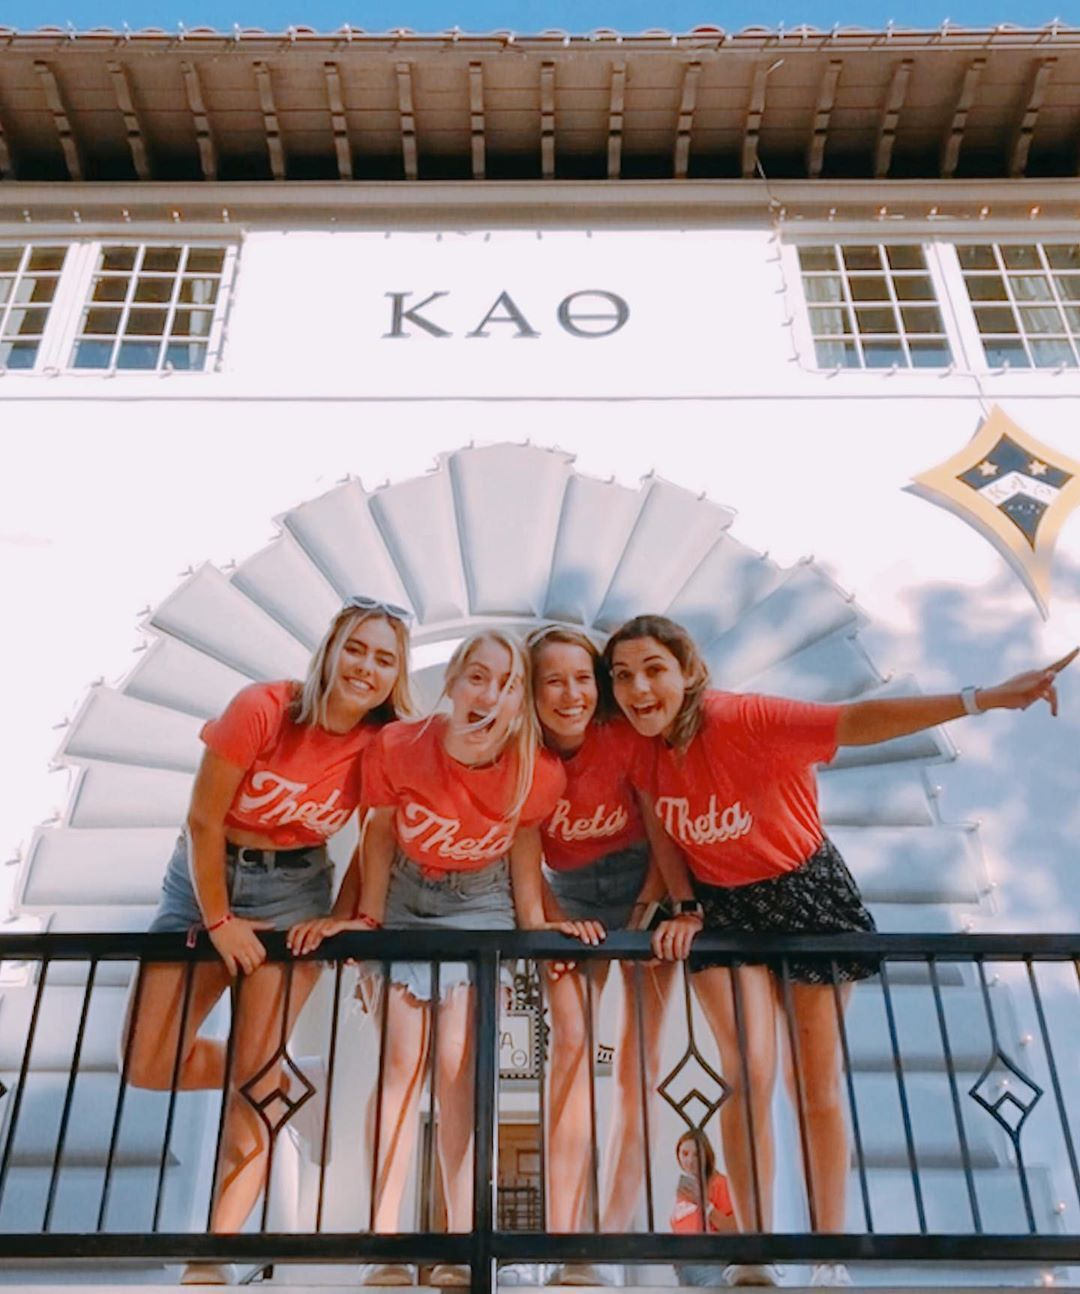 """UCLA Kappa Alpha Theta on Instagram: """"Feeling so lucky that 150 years ago today, Kappa Alpha Theta was founded by four leading women! Happy Founders Day️�"""""""